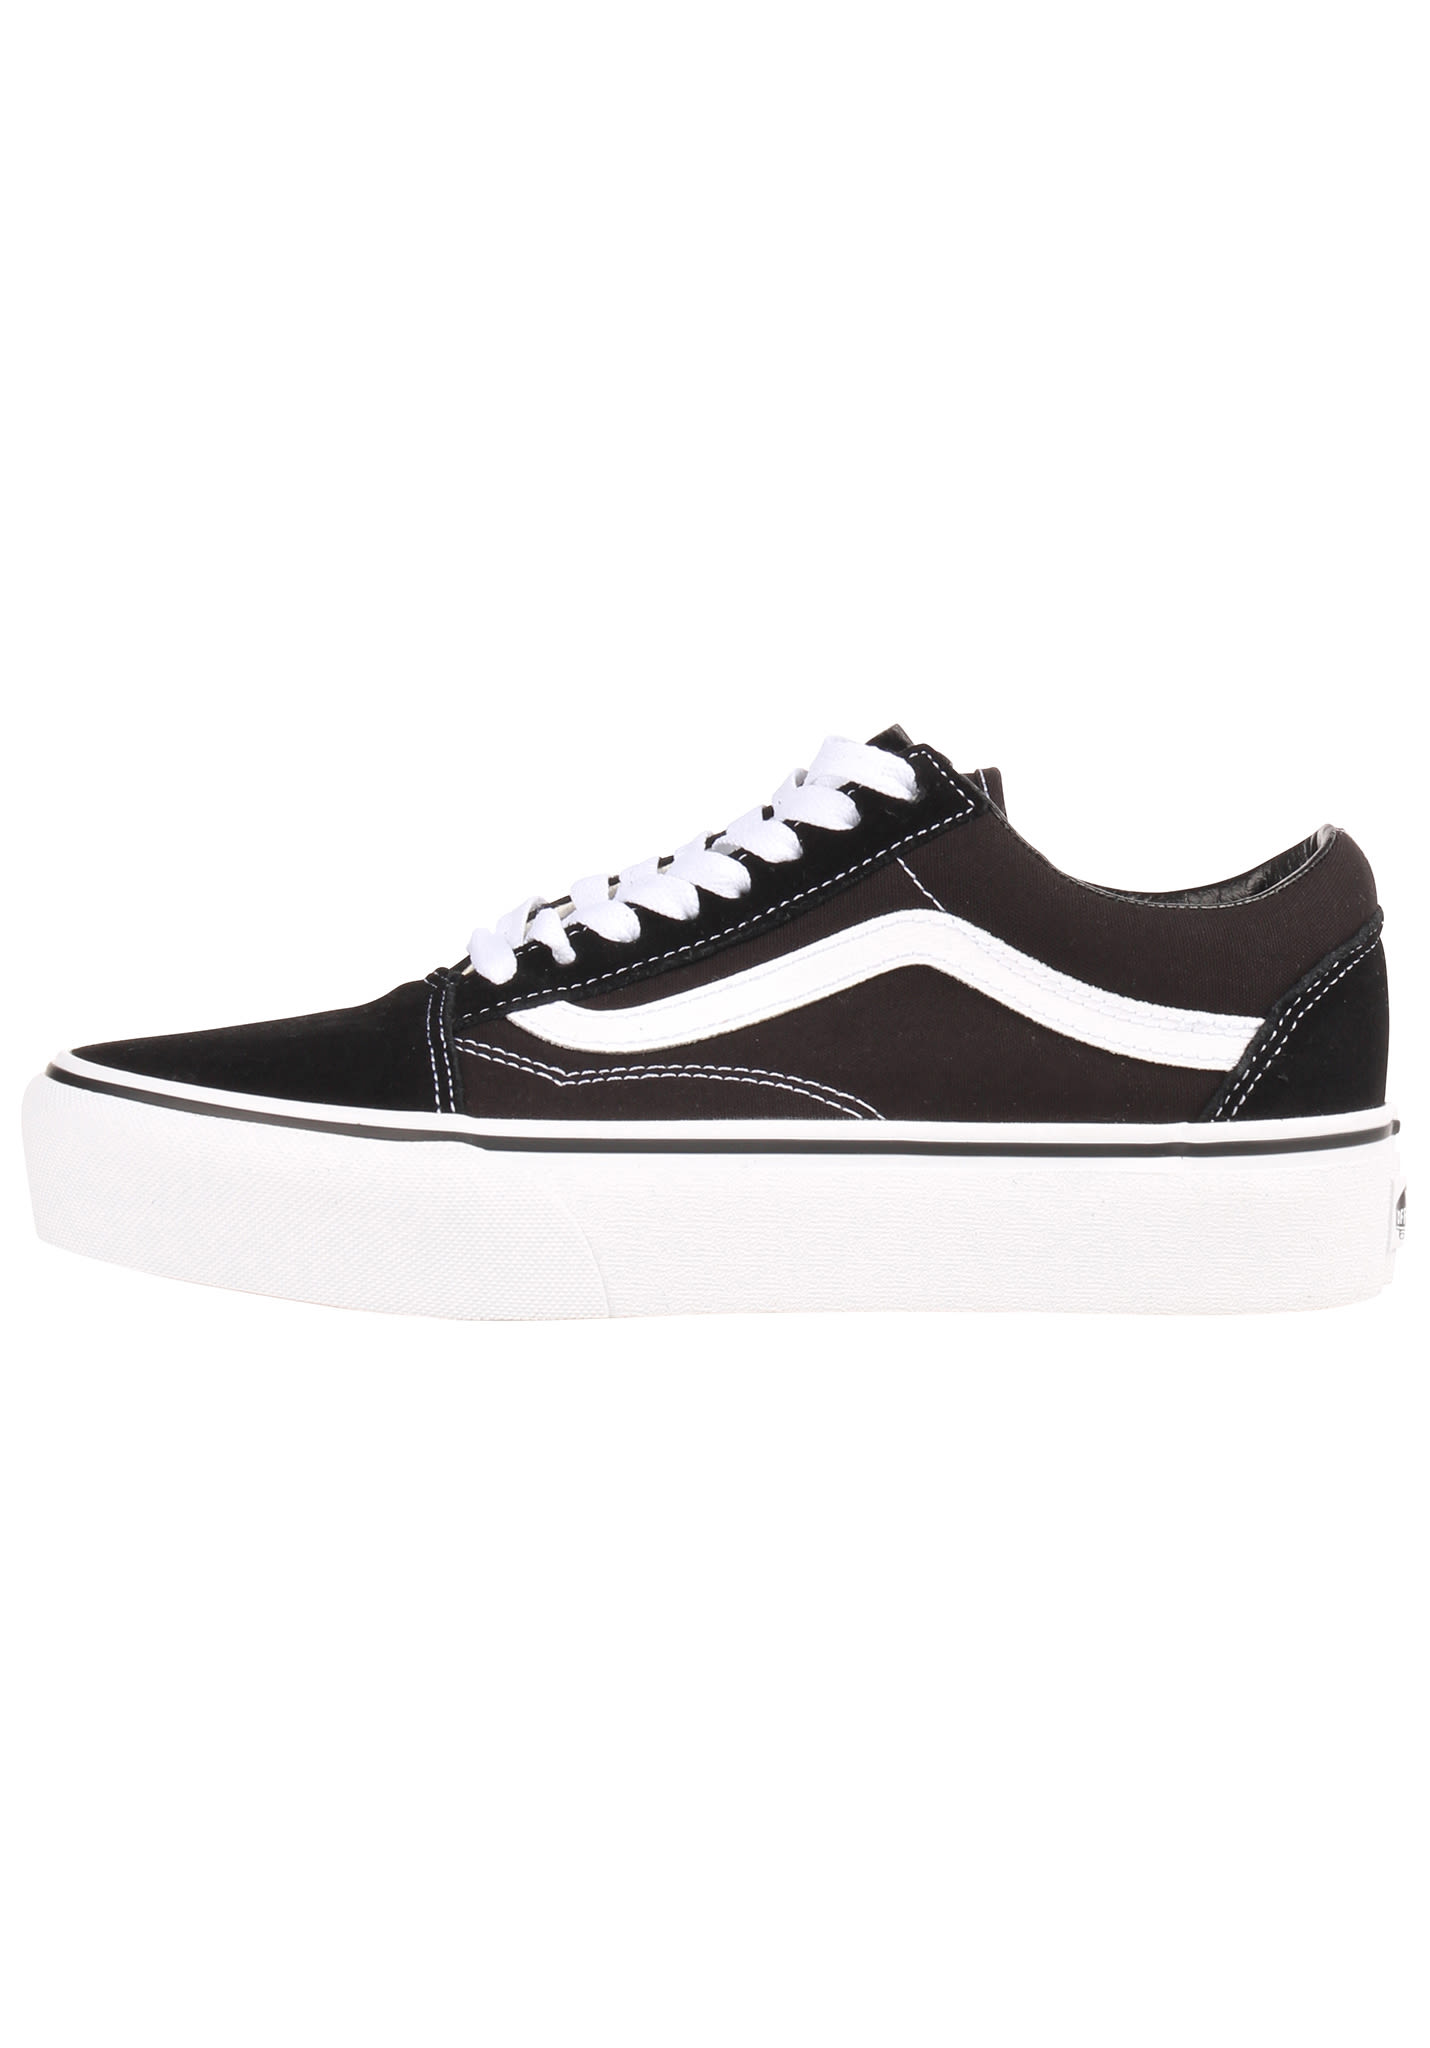 Sports Old Planet Sneaker Skool Für Vans Schwarz Damen Platform 8q6wnSFx